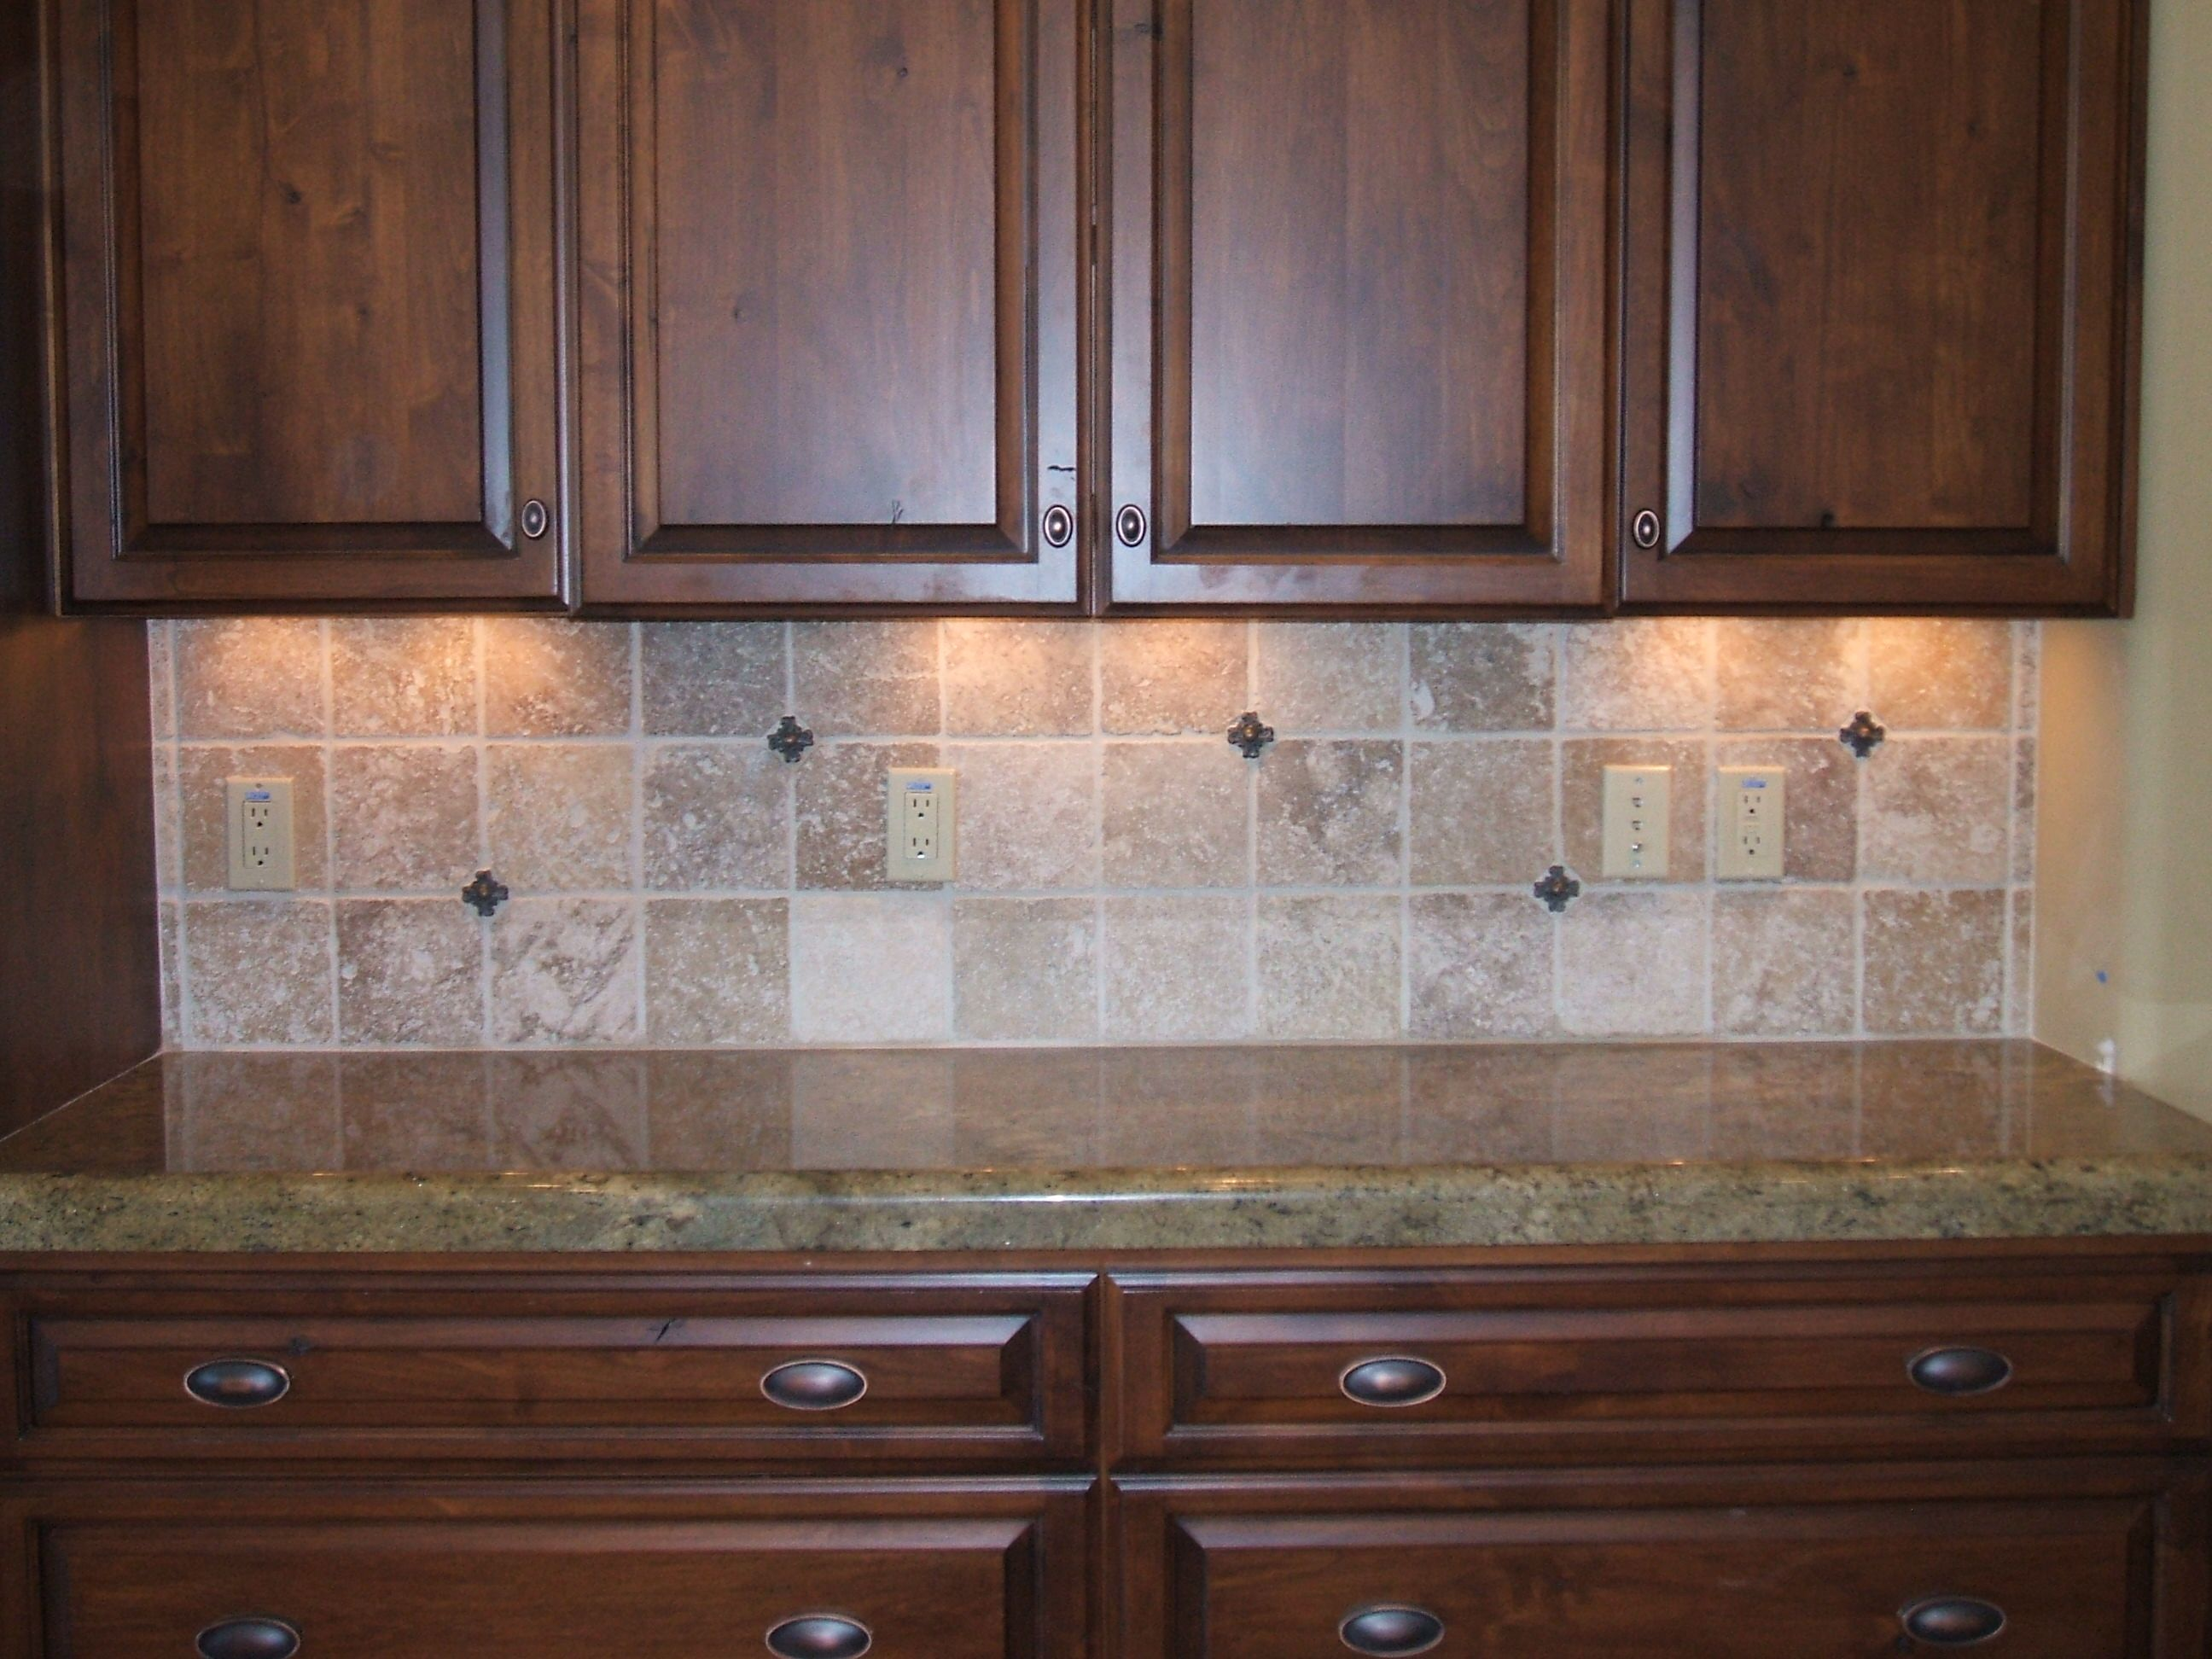 Ceramic Tile Patterns For Kitchen Backsplash Roselawnlutheran